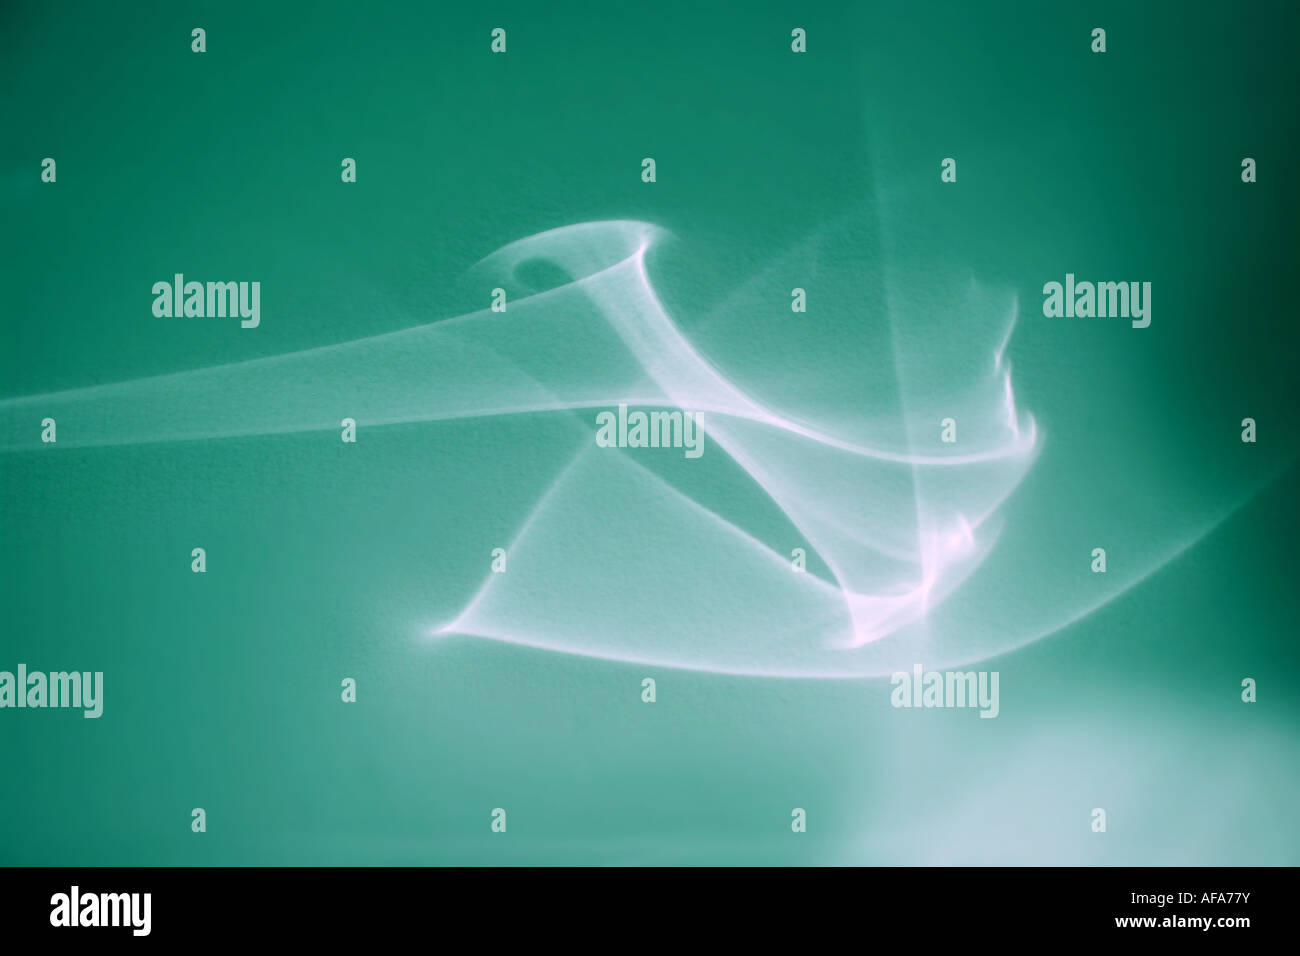 Abstract light pattern background Photo Stock